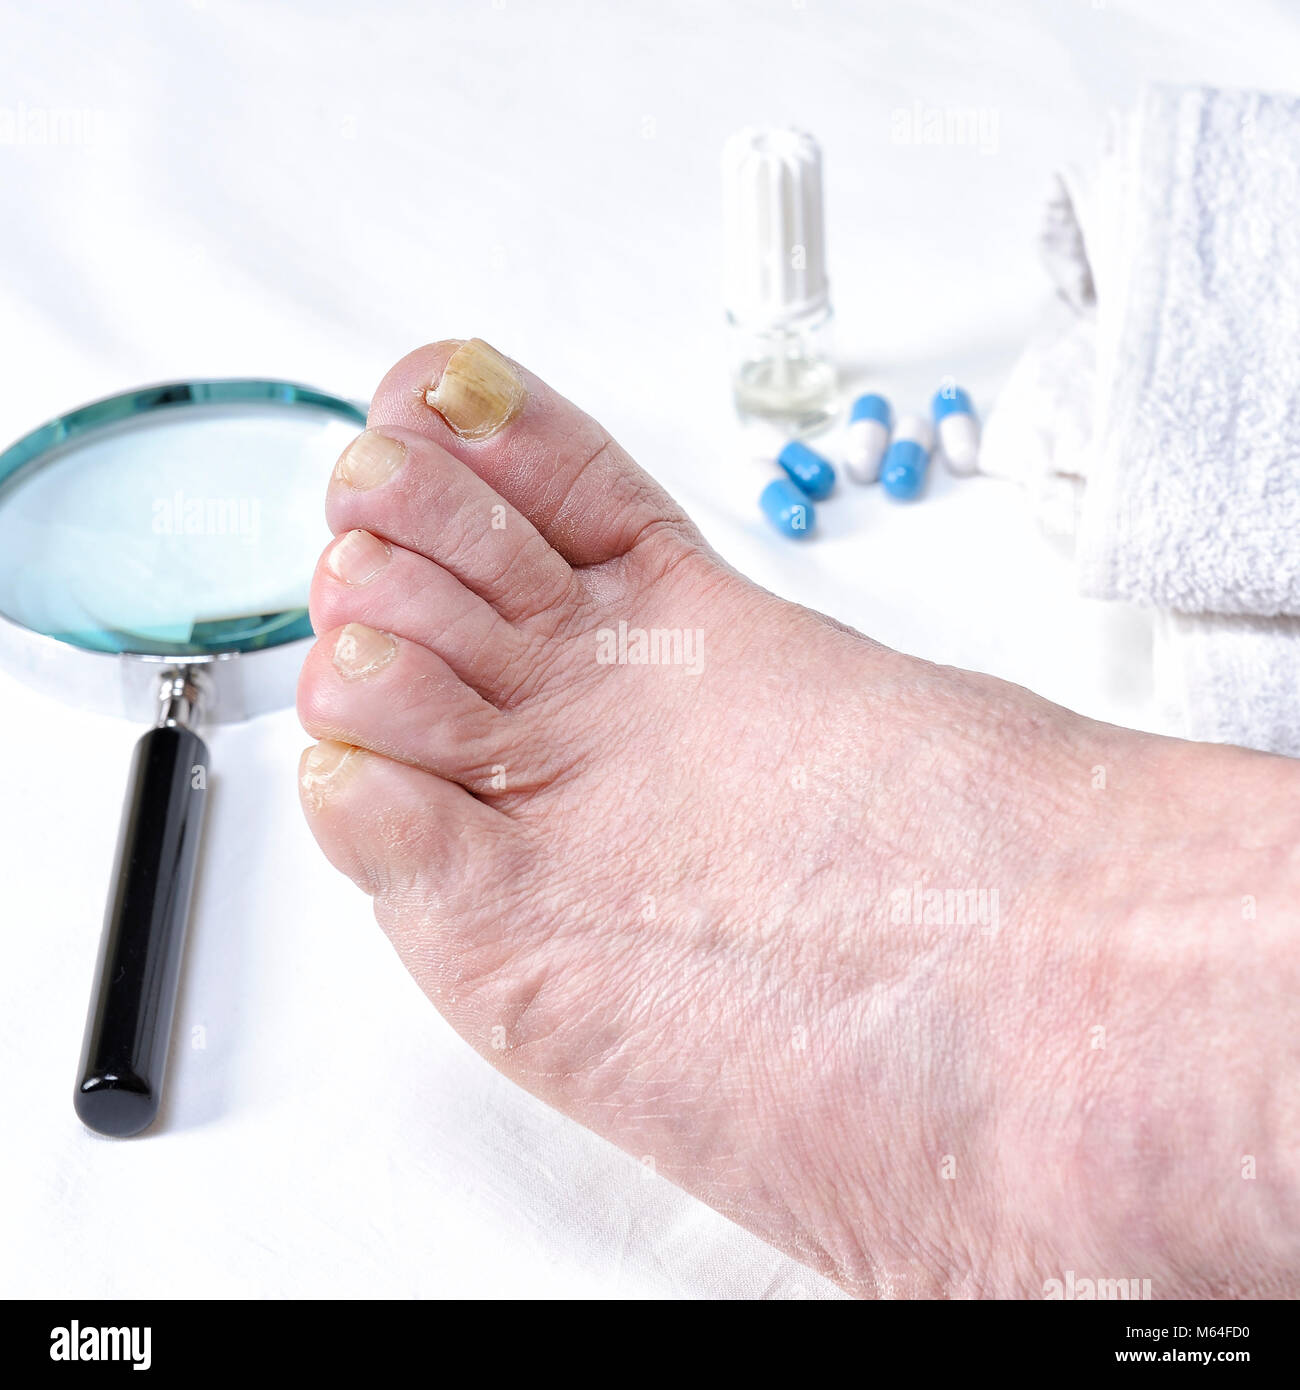 Close up of nail affected by onychomycosis following the action of pathogenic fungi. - Stock Image